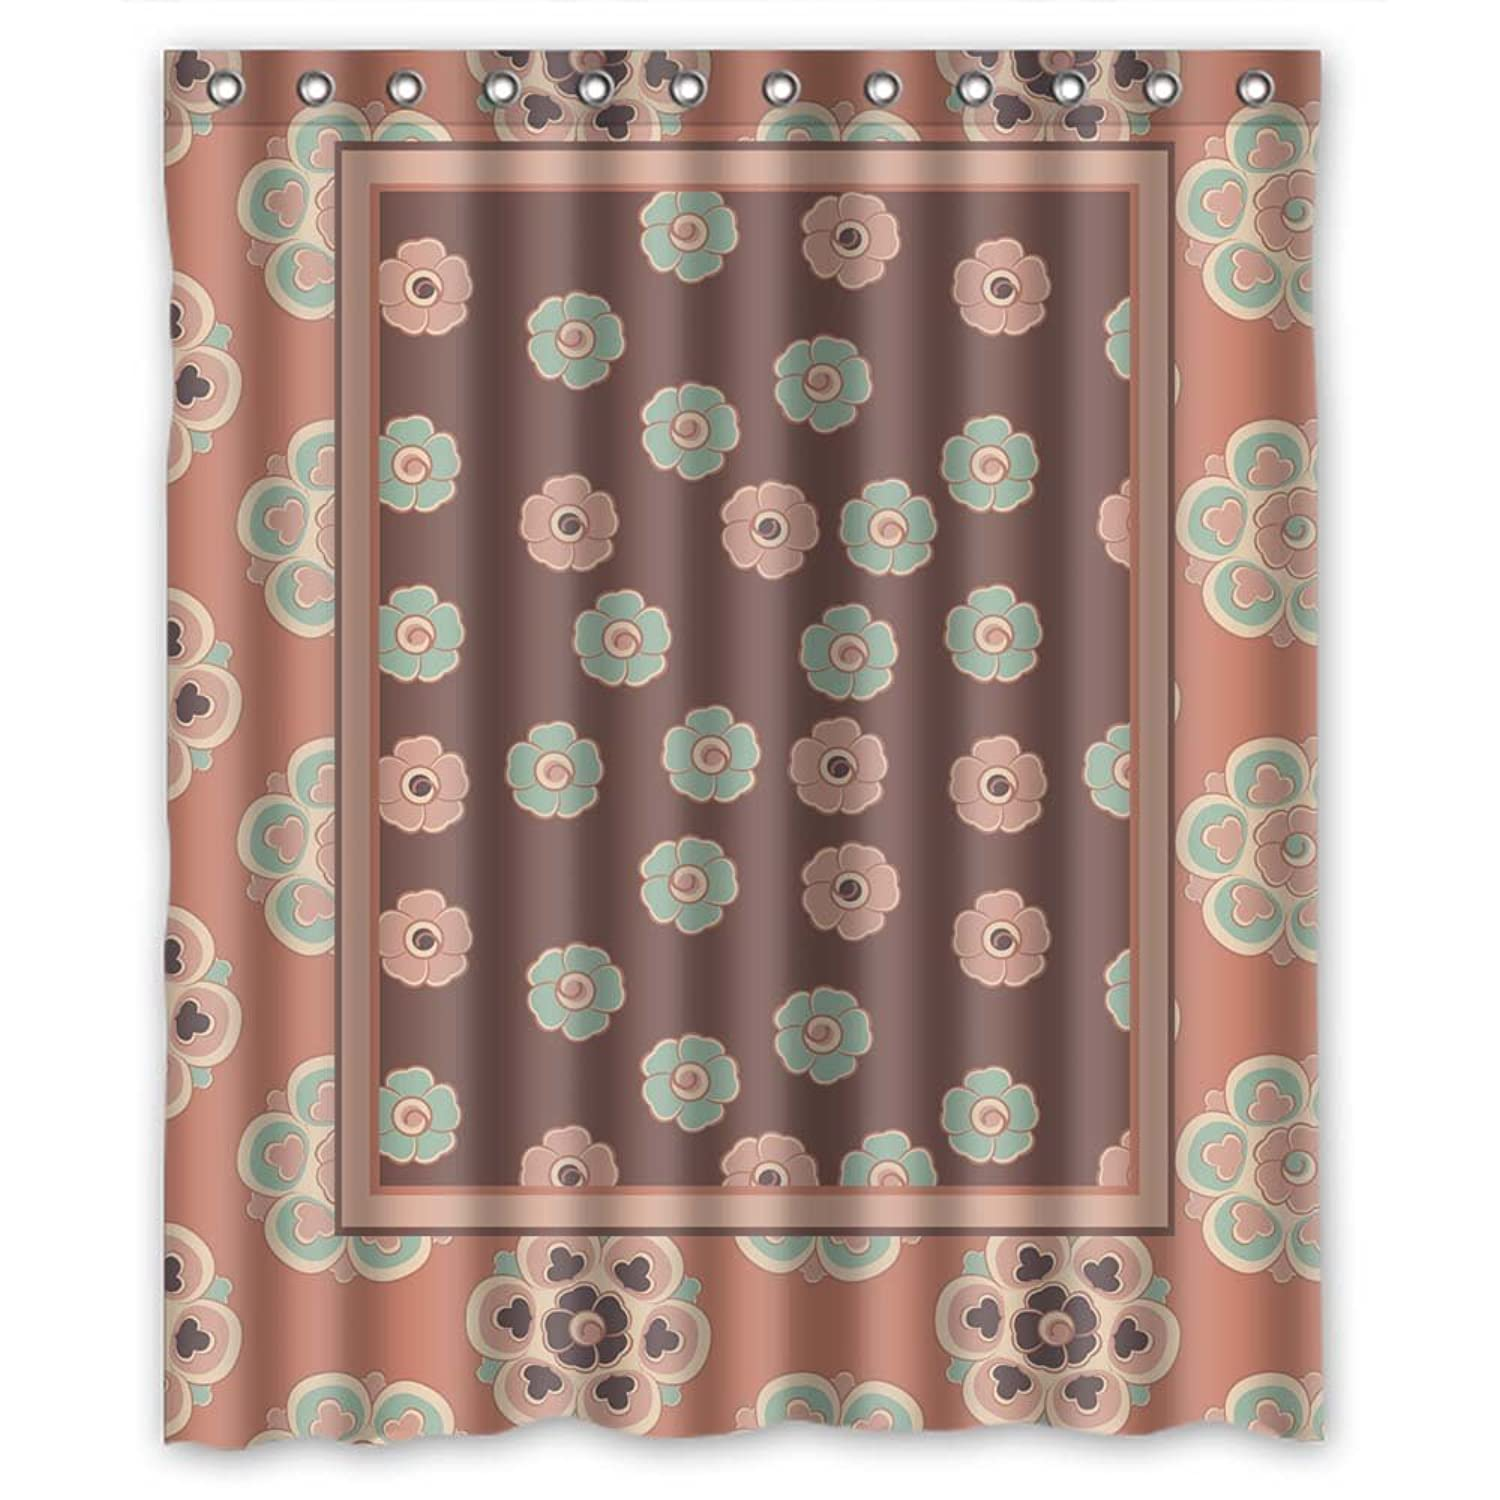 BUSIN Christmas Shower Curtains Width X Height 60 72 Inches W H 150 By 180 Cm